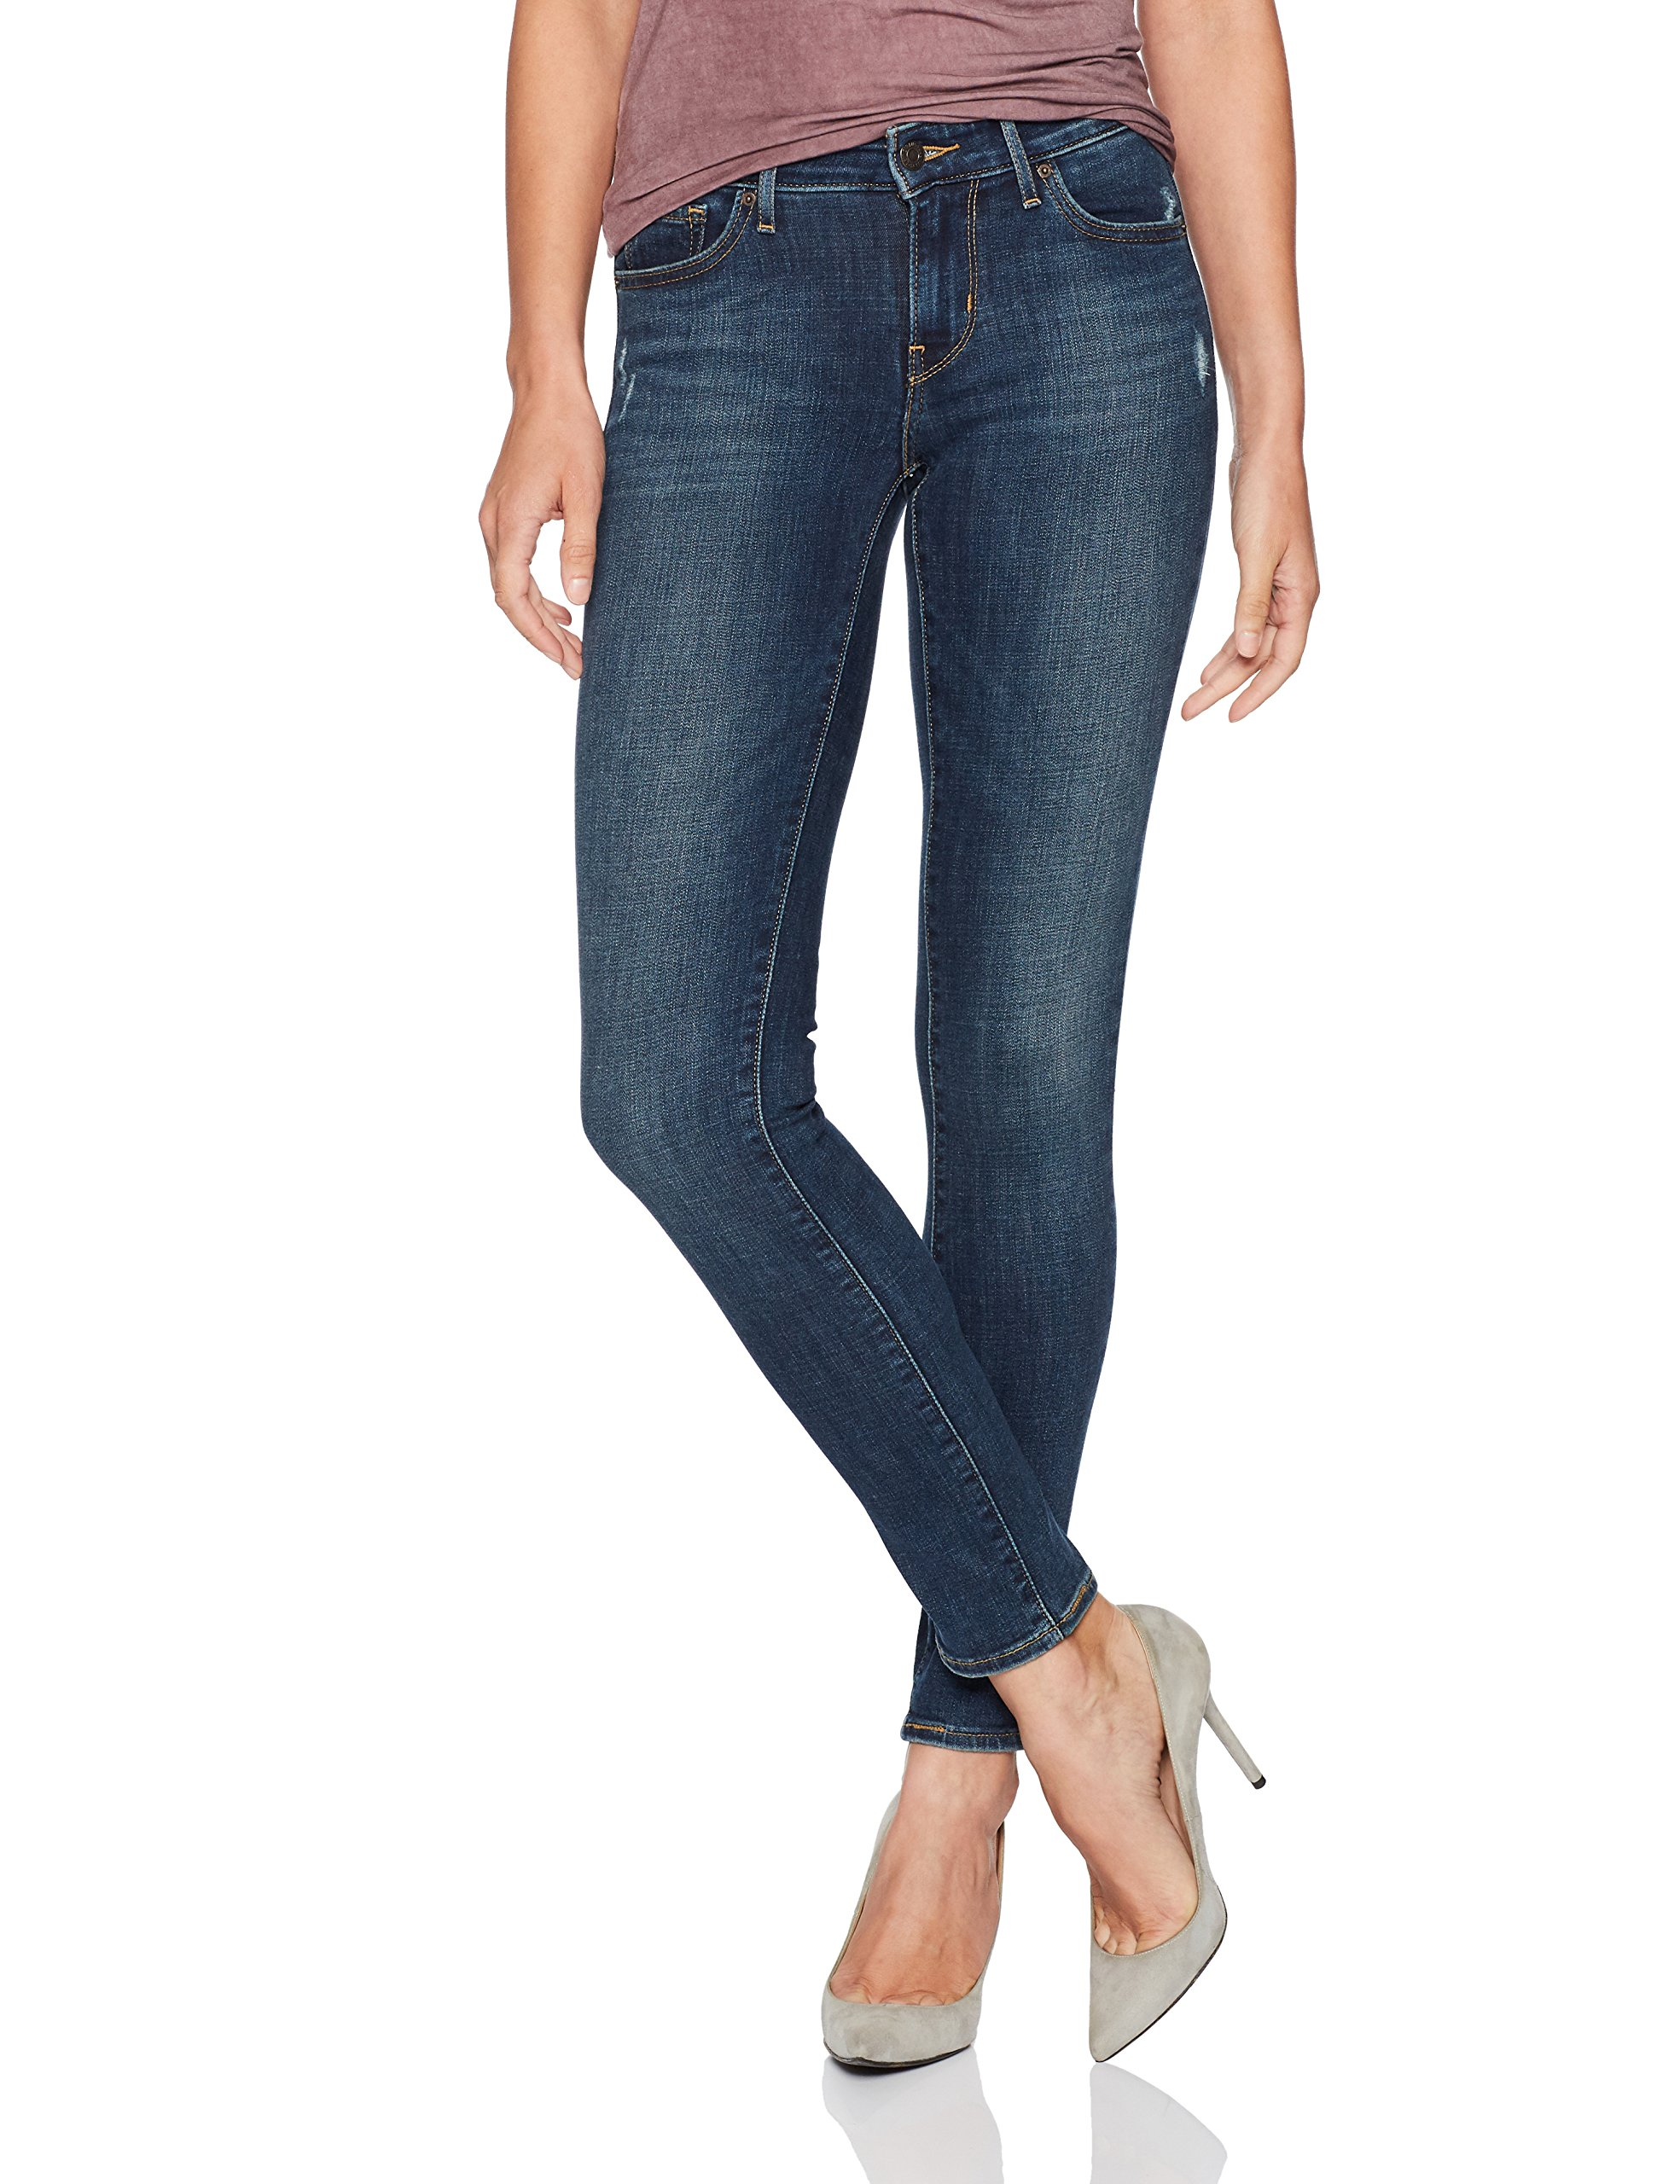 Levi's Women's 711 Skinny Jean, Little Secret, 27 (US 4) R by Levi's